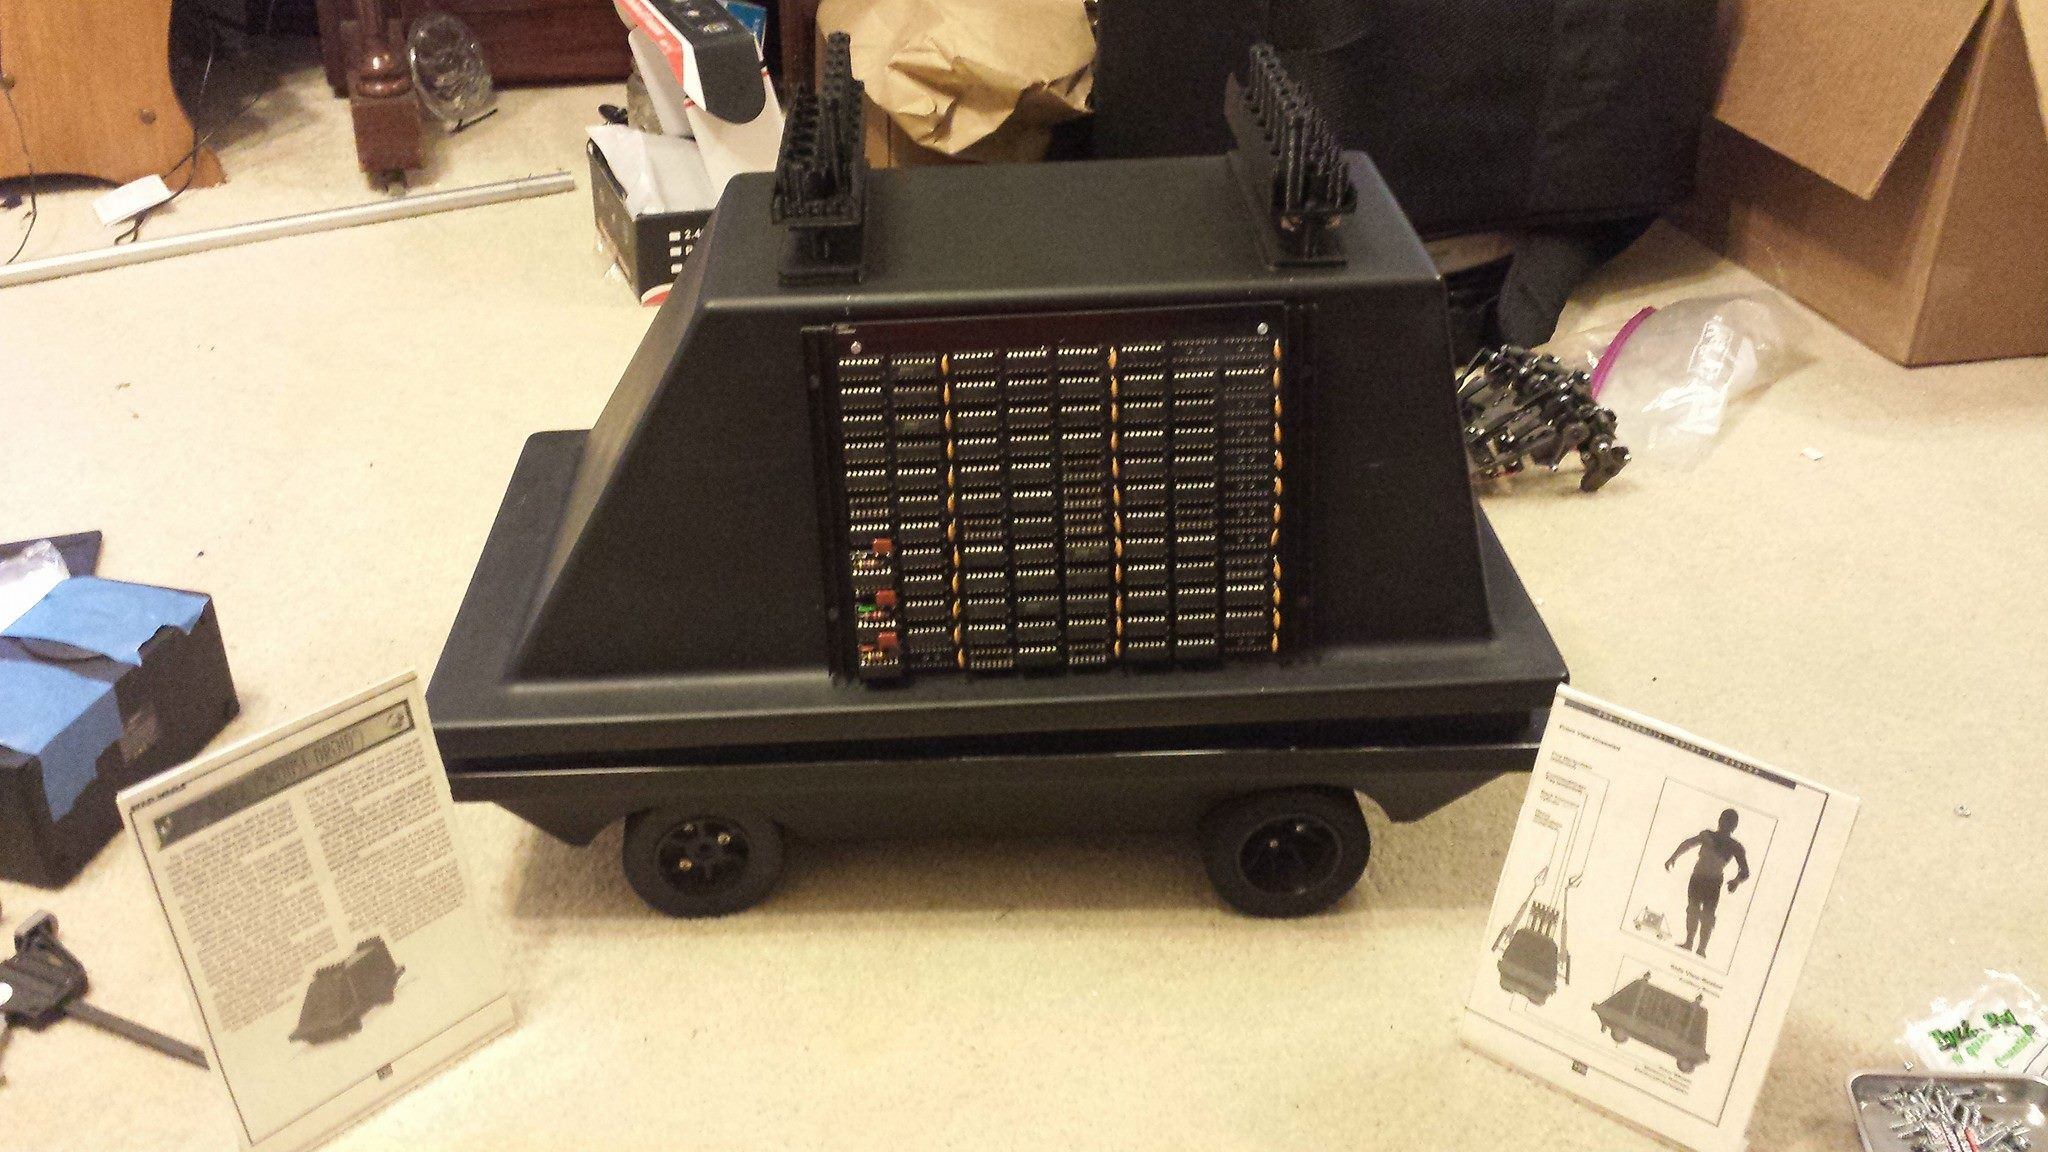 Mouse Droid MSE-6-5C4883R5: Near Completion